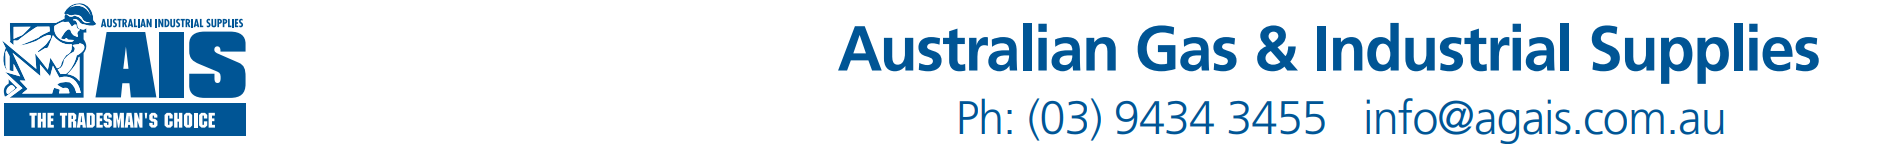 Australian Gas and Industrial Supplies